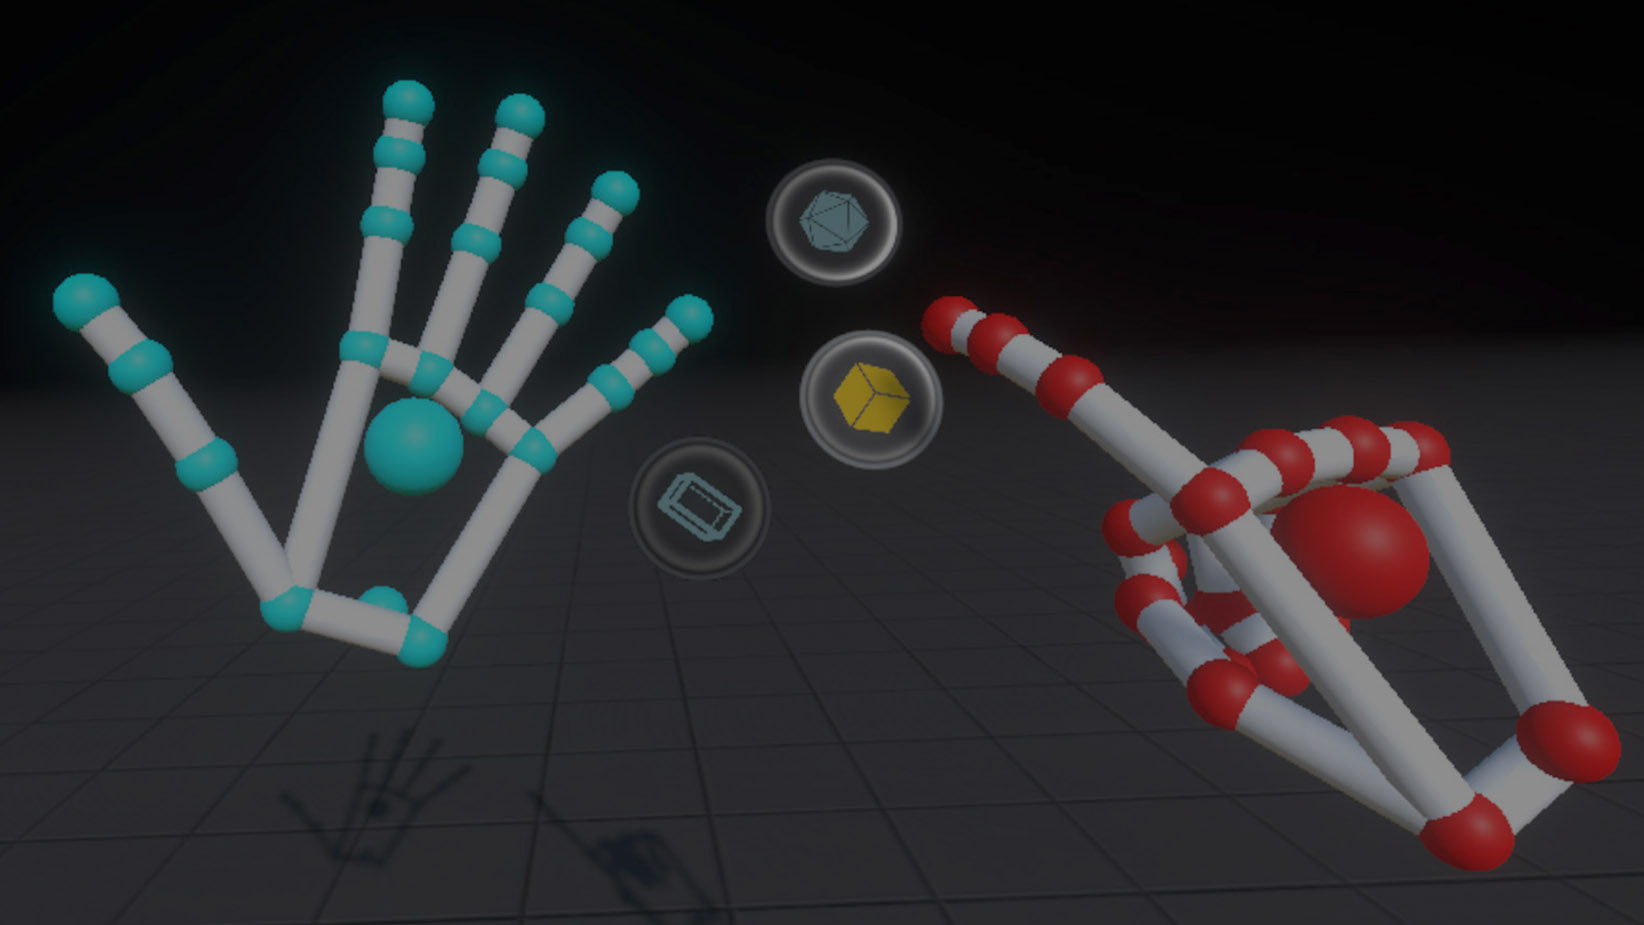 The hand interface from Blocks. Buttons only appear when your left hand is in this position.